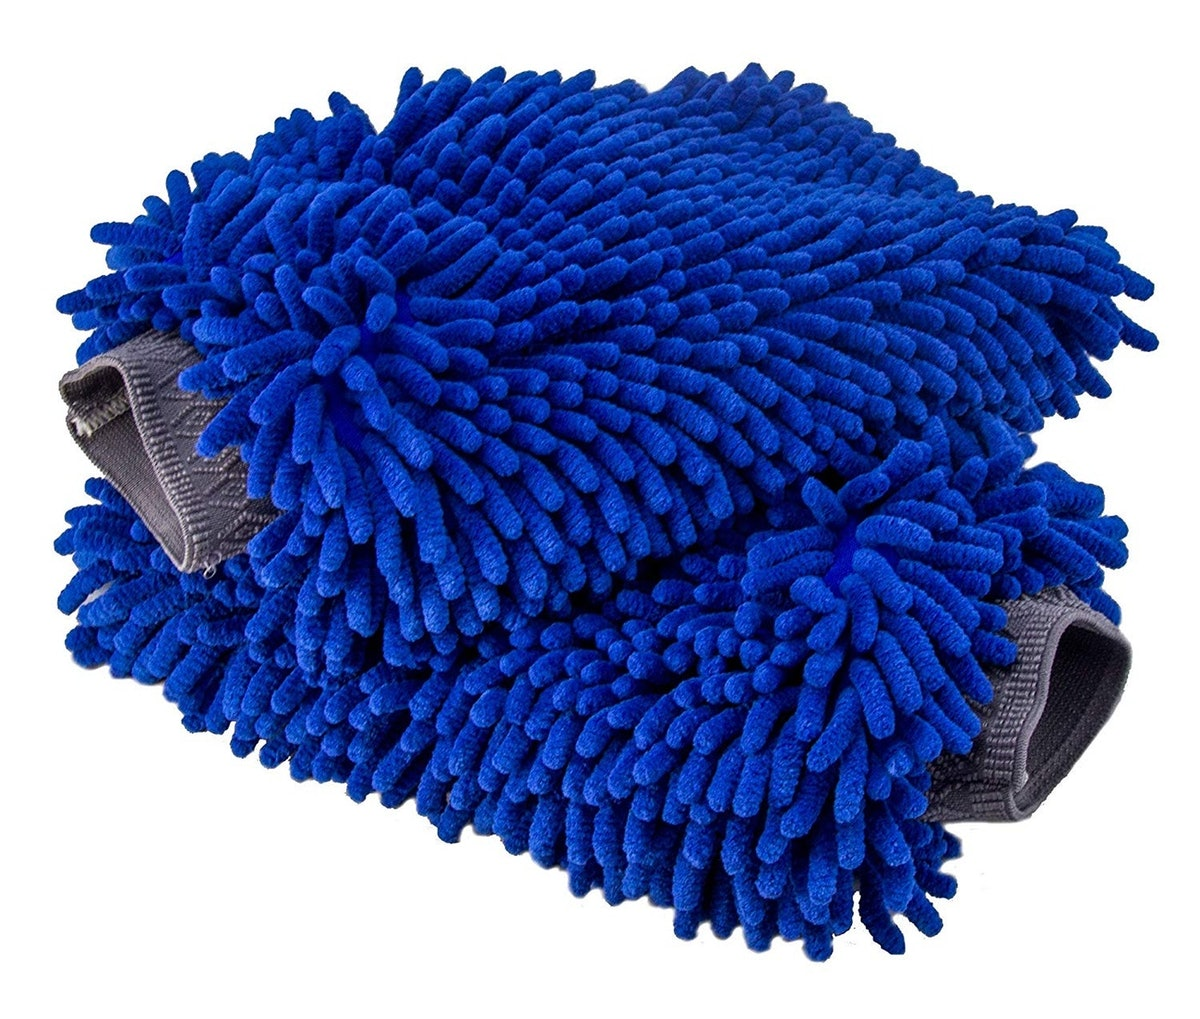 Relentless Drive Car Wash Mitts (2 Pack)